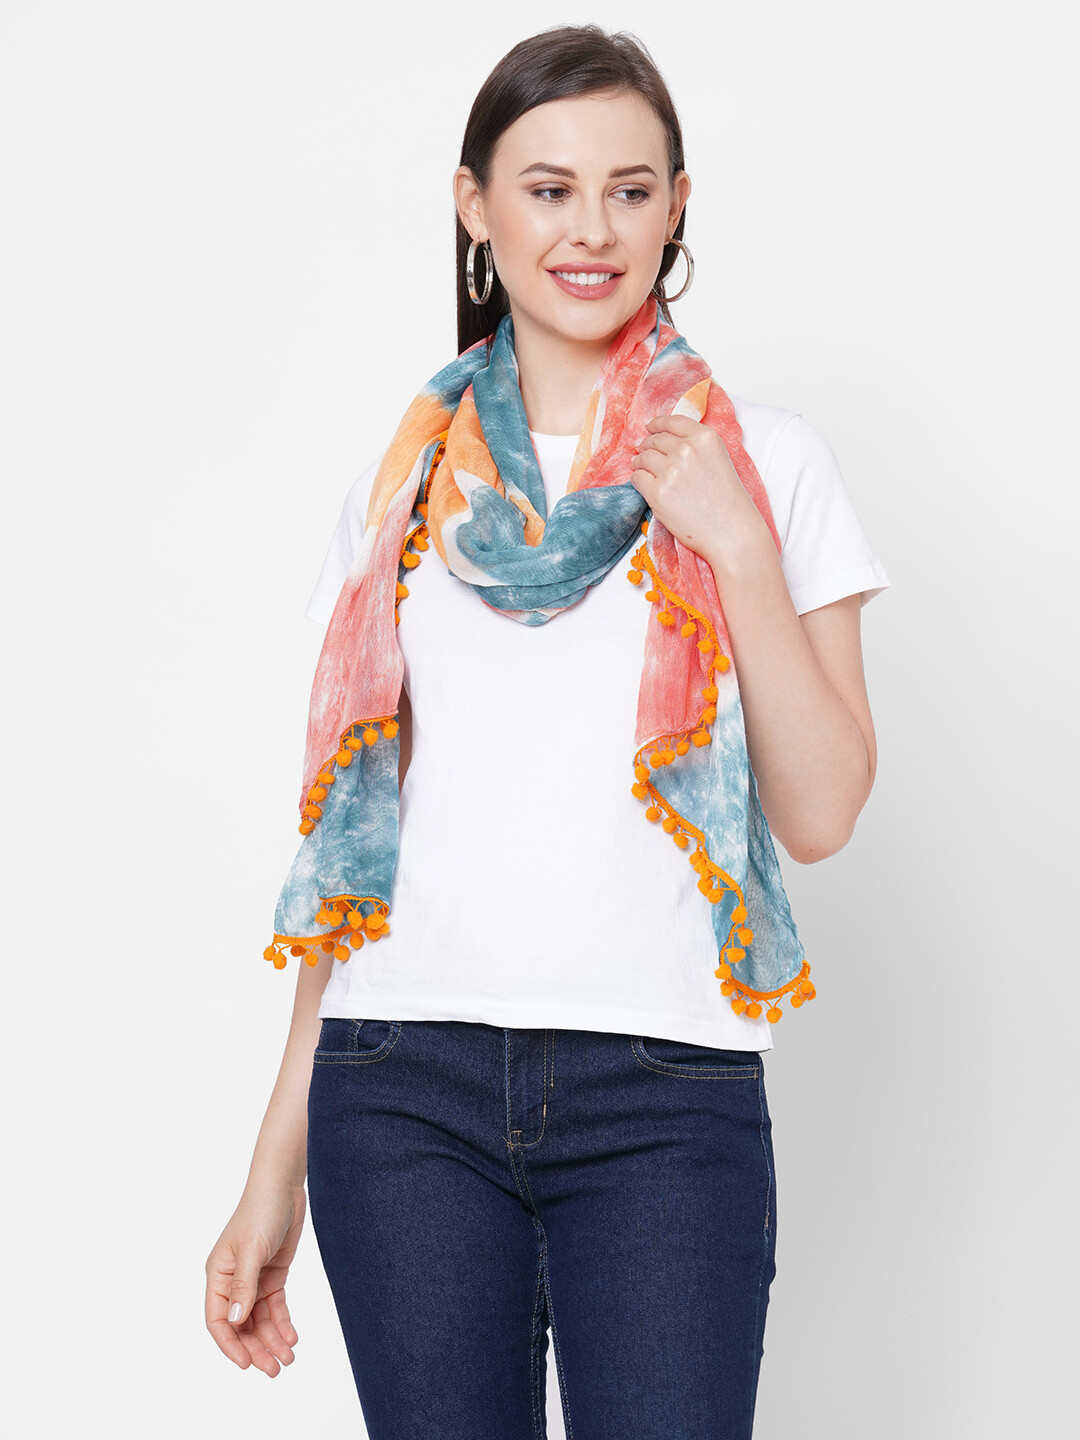 Large rayon Tie-Dye Scarves with Poms